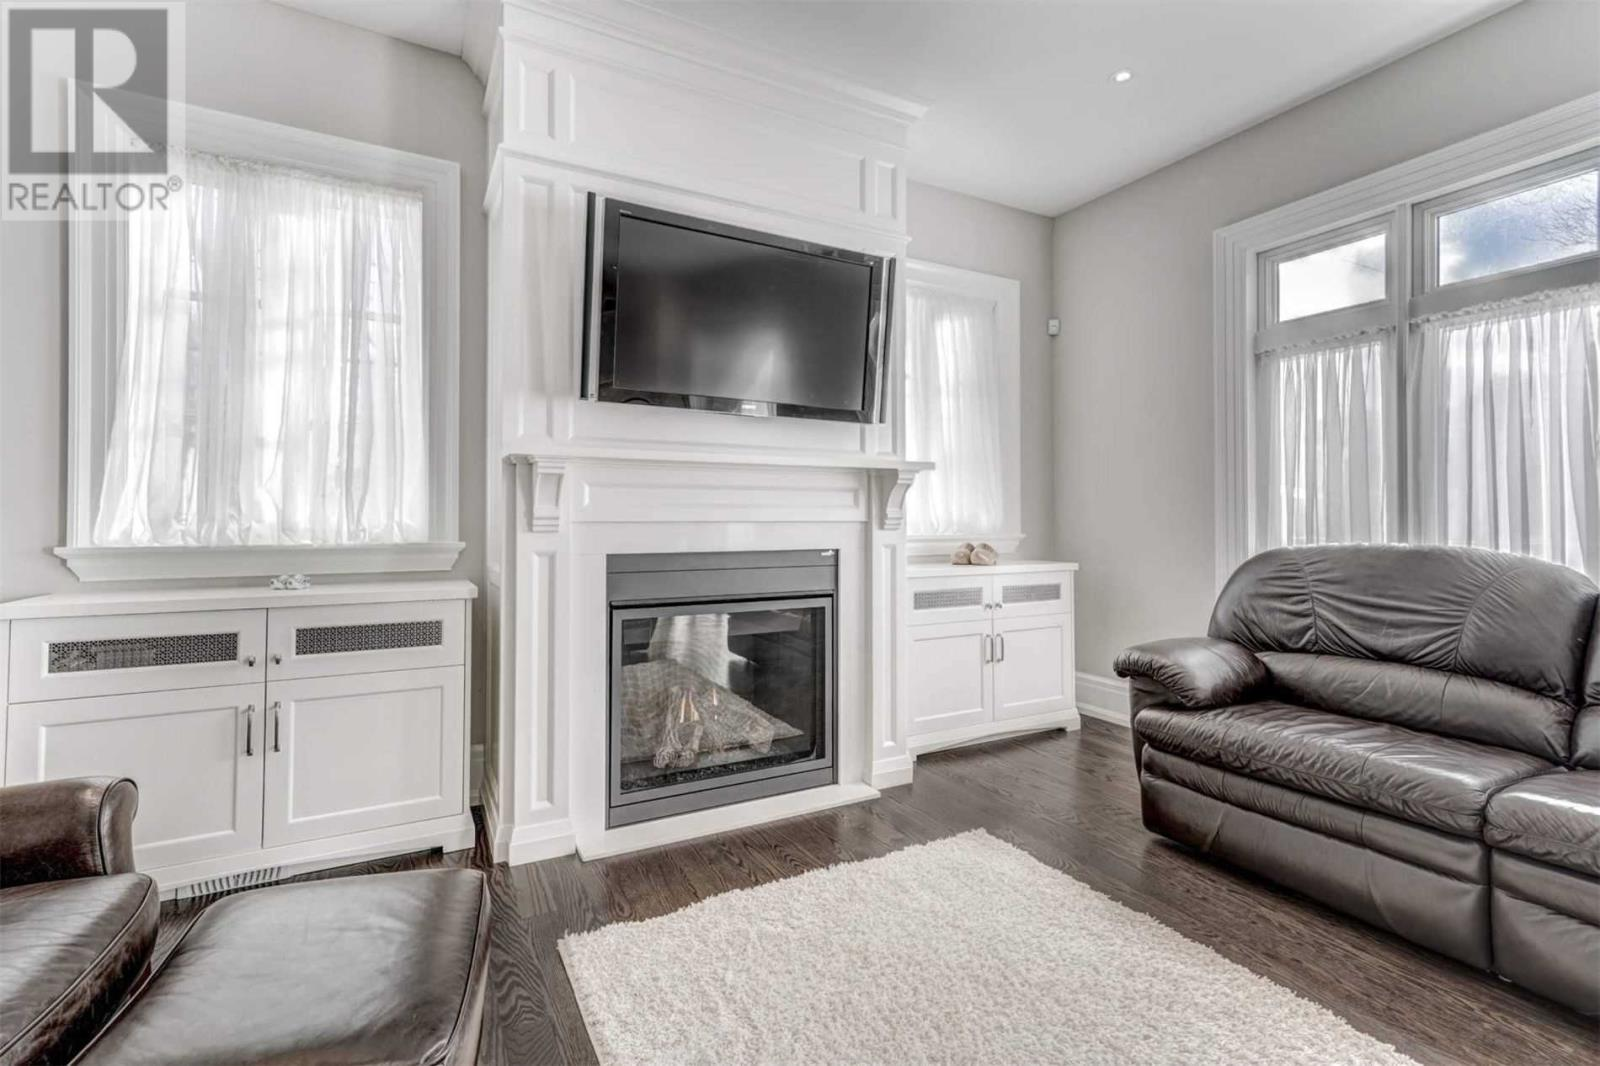 572 Stephens Cres, Oakville, Ontario  L6K 1Y3 - Photo 6 - W4657472